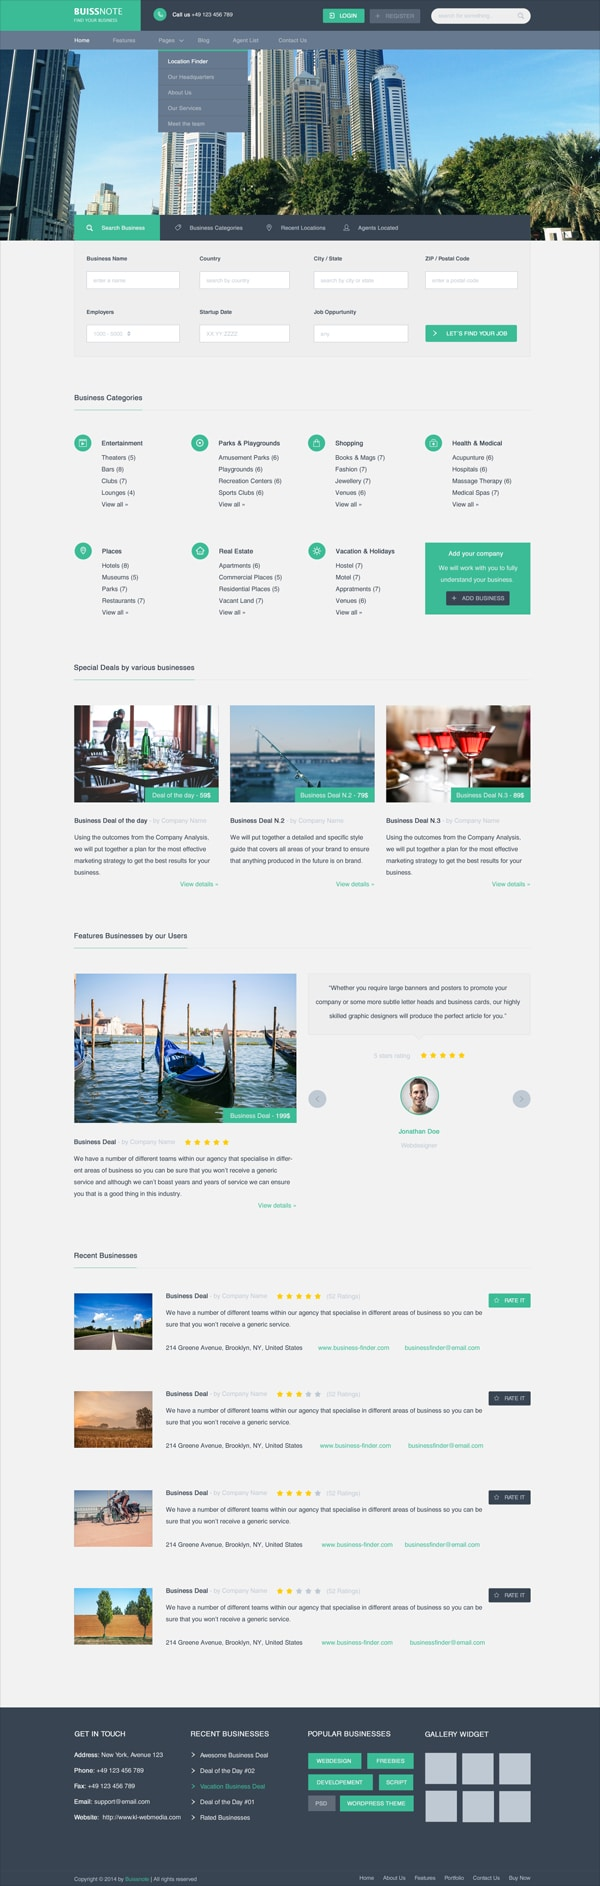 Buissnote – Free Web Template PSD